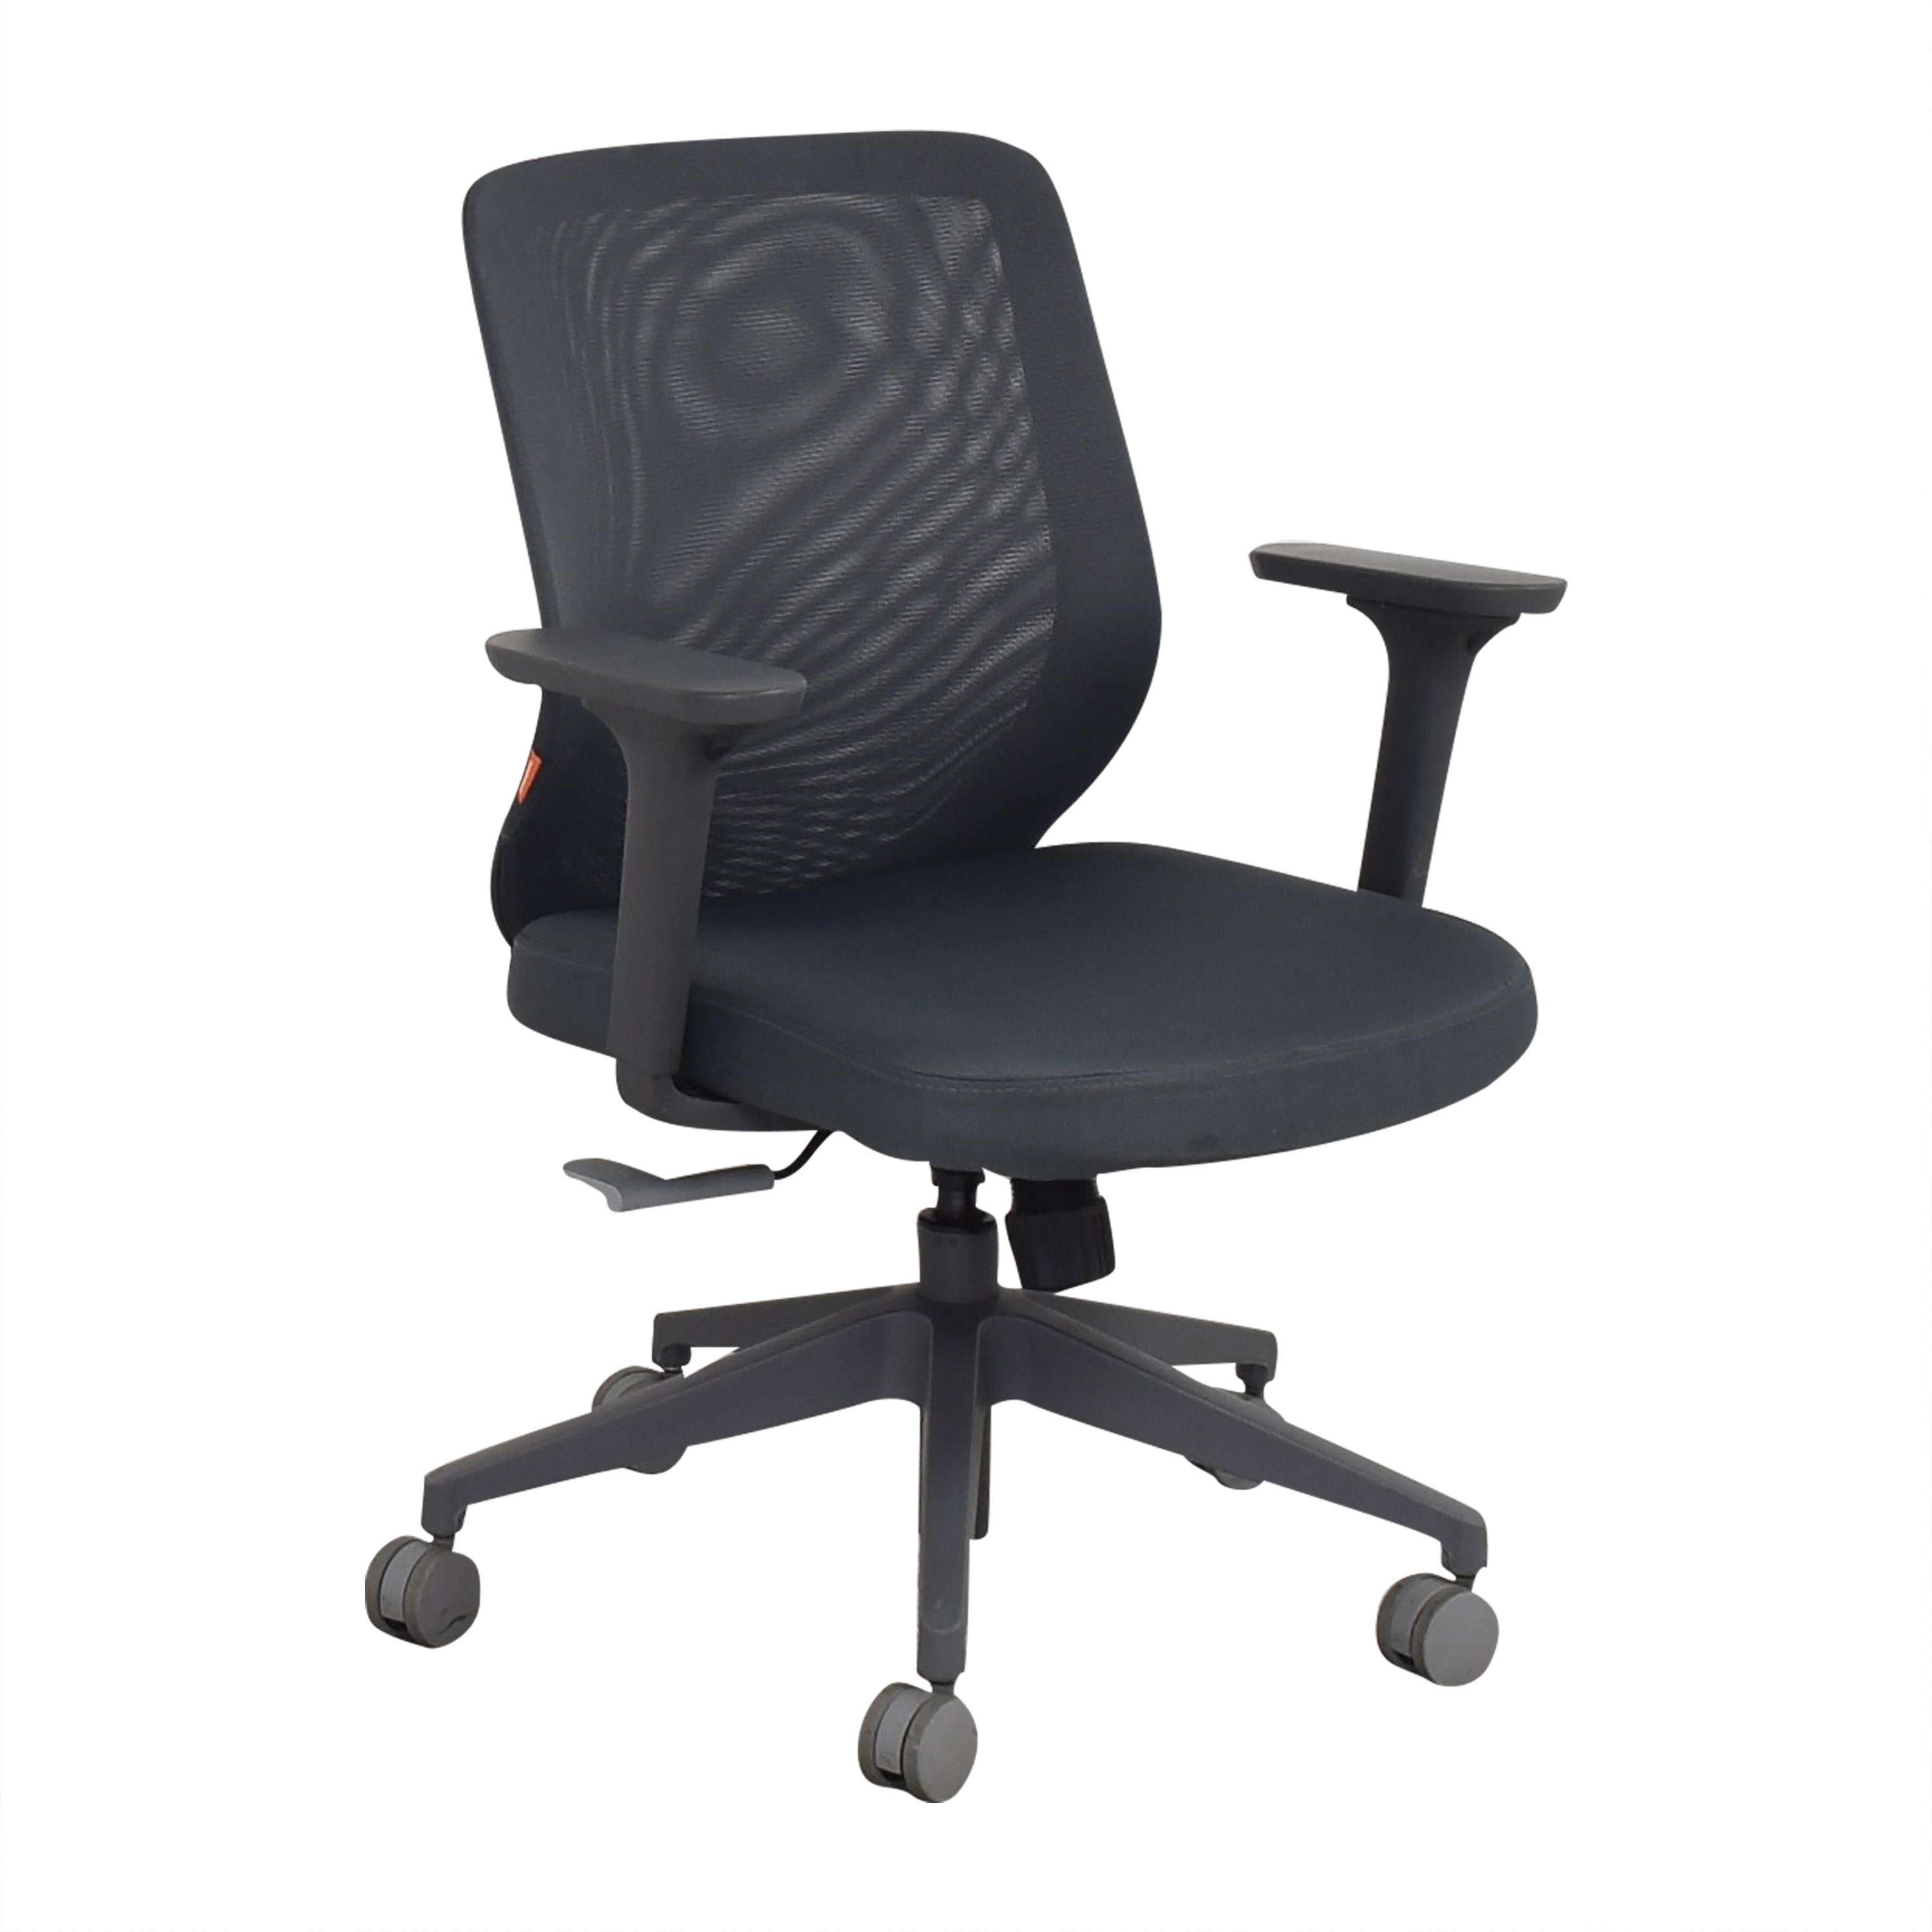 Poppin Poppin Max Task Chair price